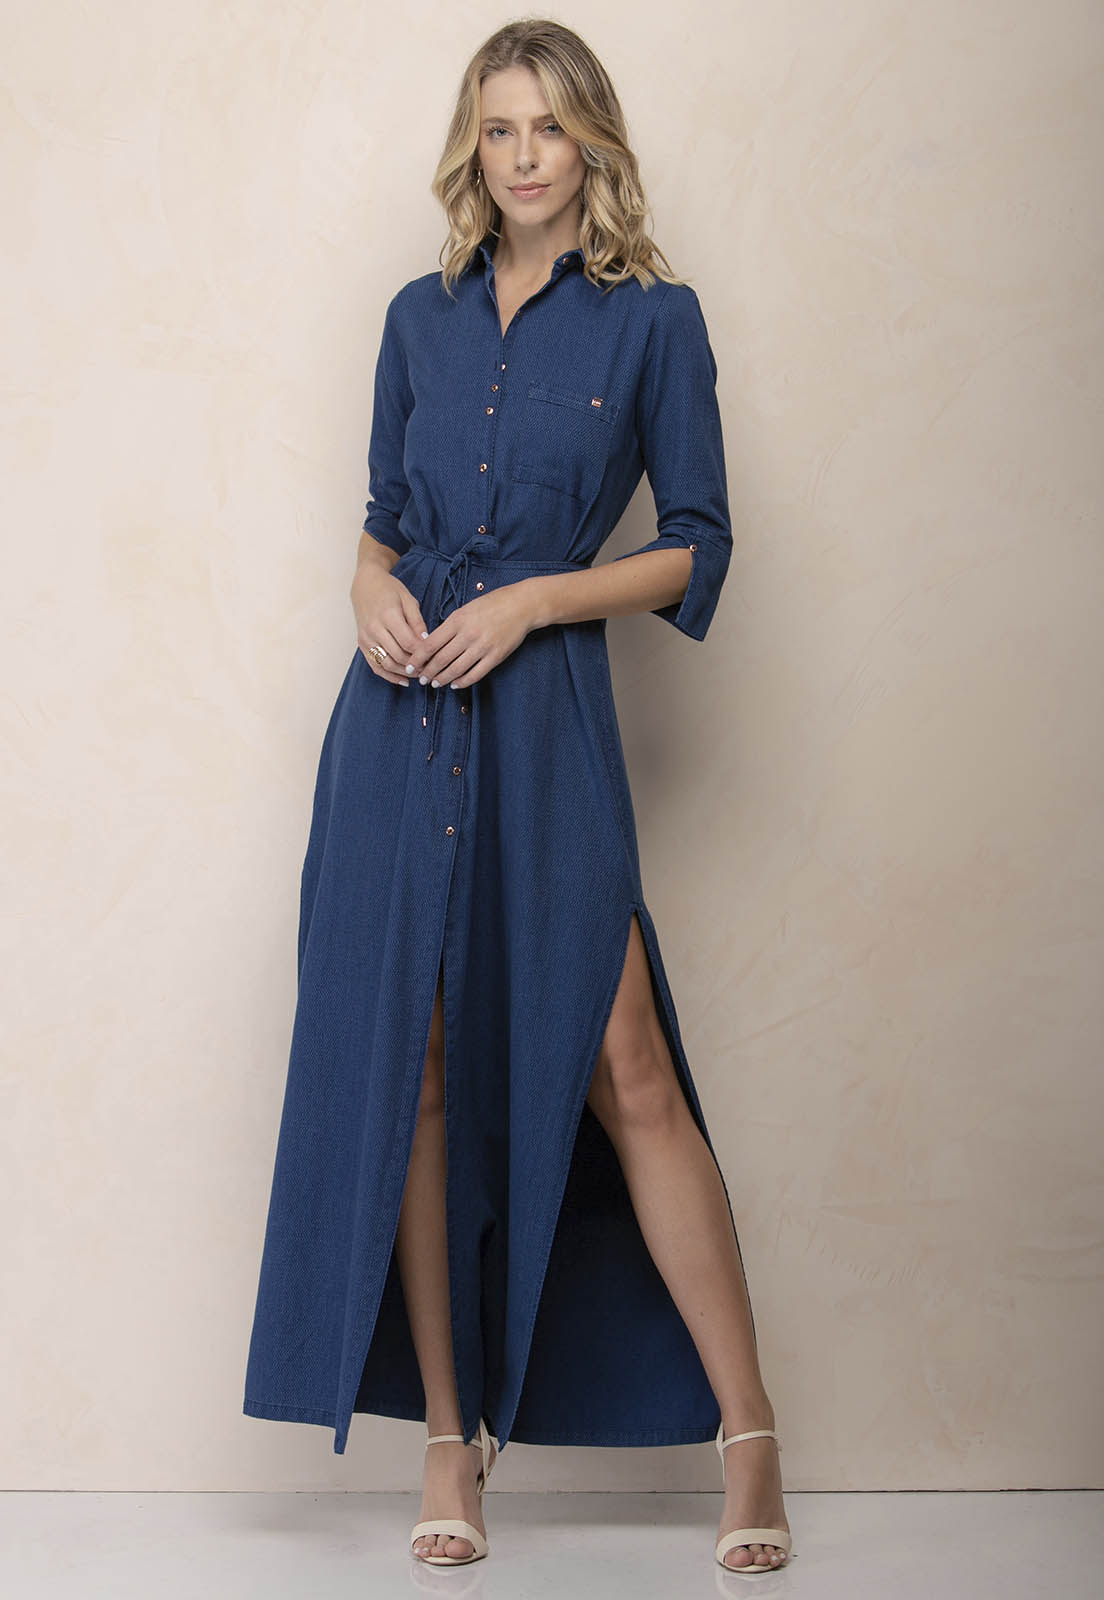 Vestido Jeans Shirtdress Zaiko 2525